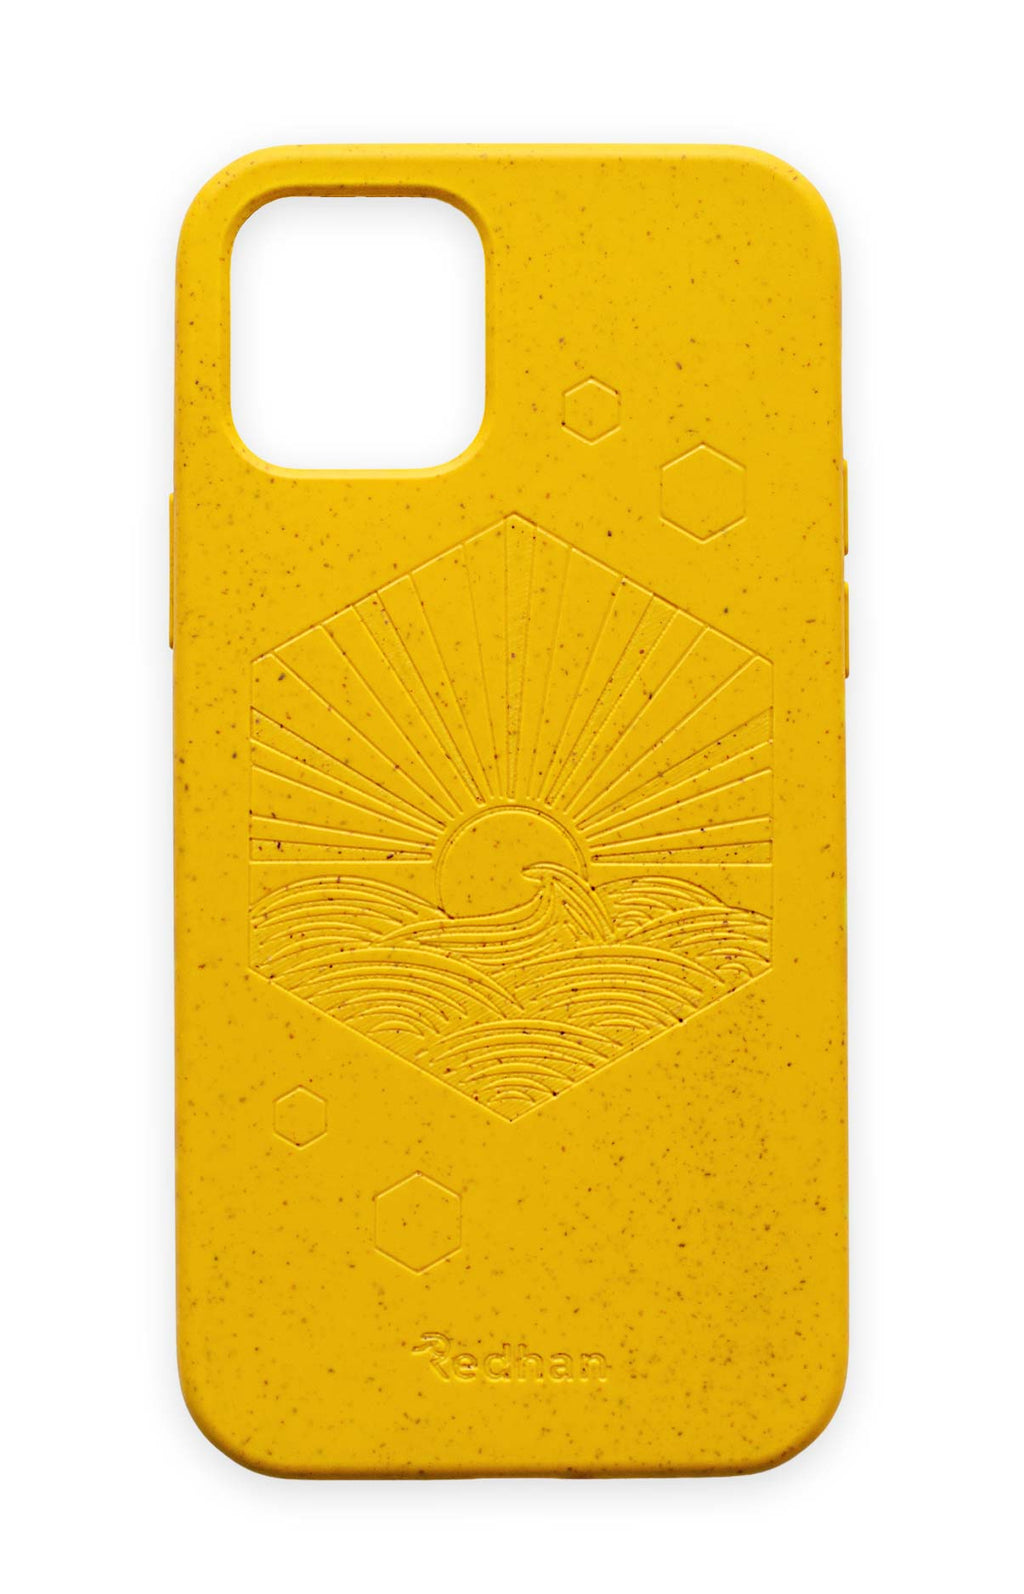 Eco-Friendly Phone Case Yellow,  iPhone 12 Pro Max Phone case in Yellow, Biodegradable